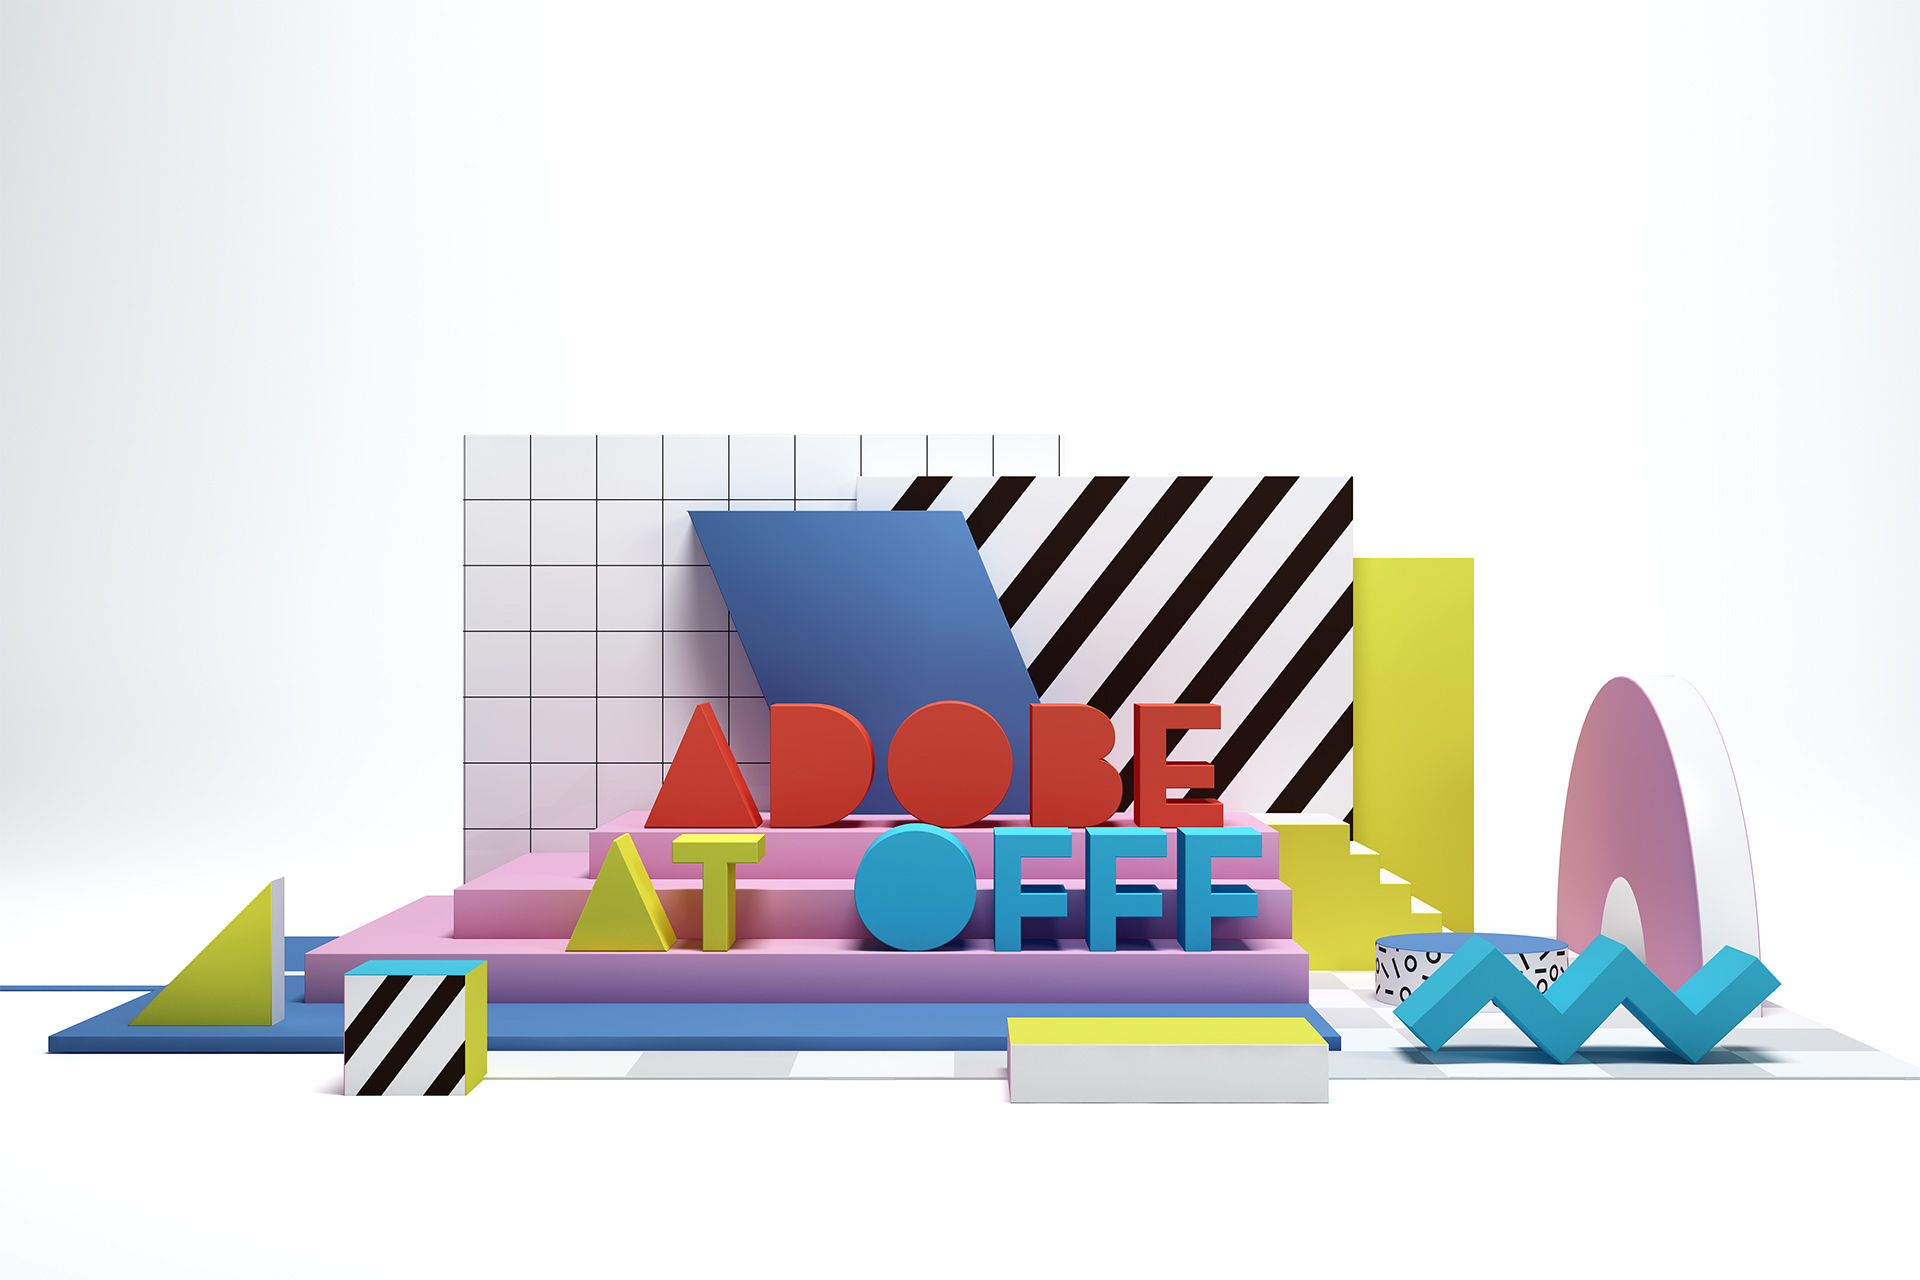 Set Design & Art Direction: Adobe at OFFF 2017